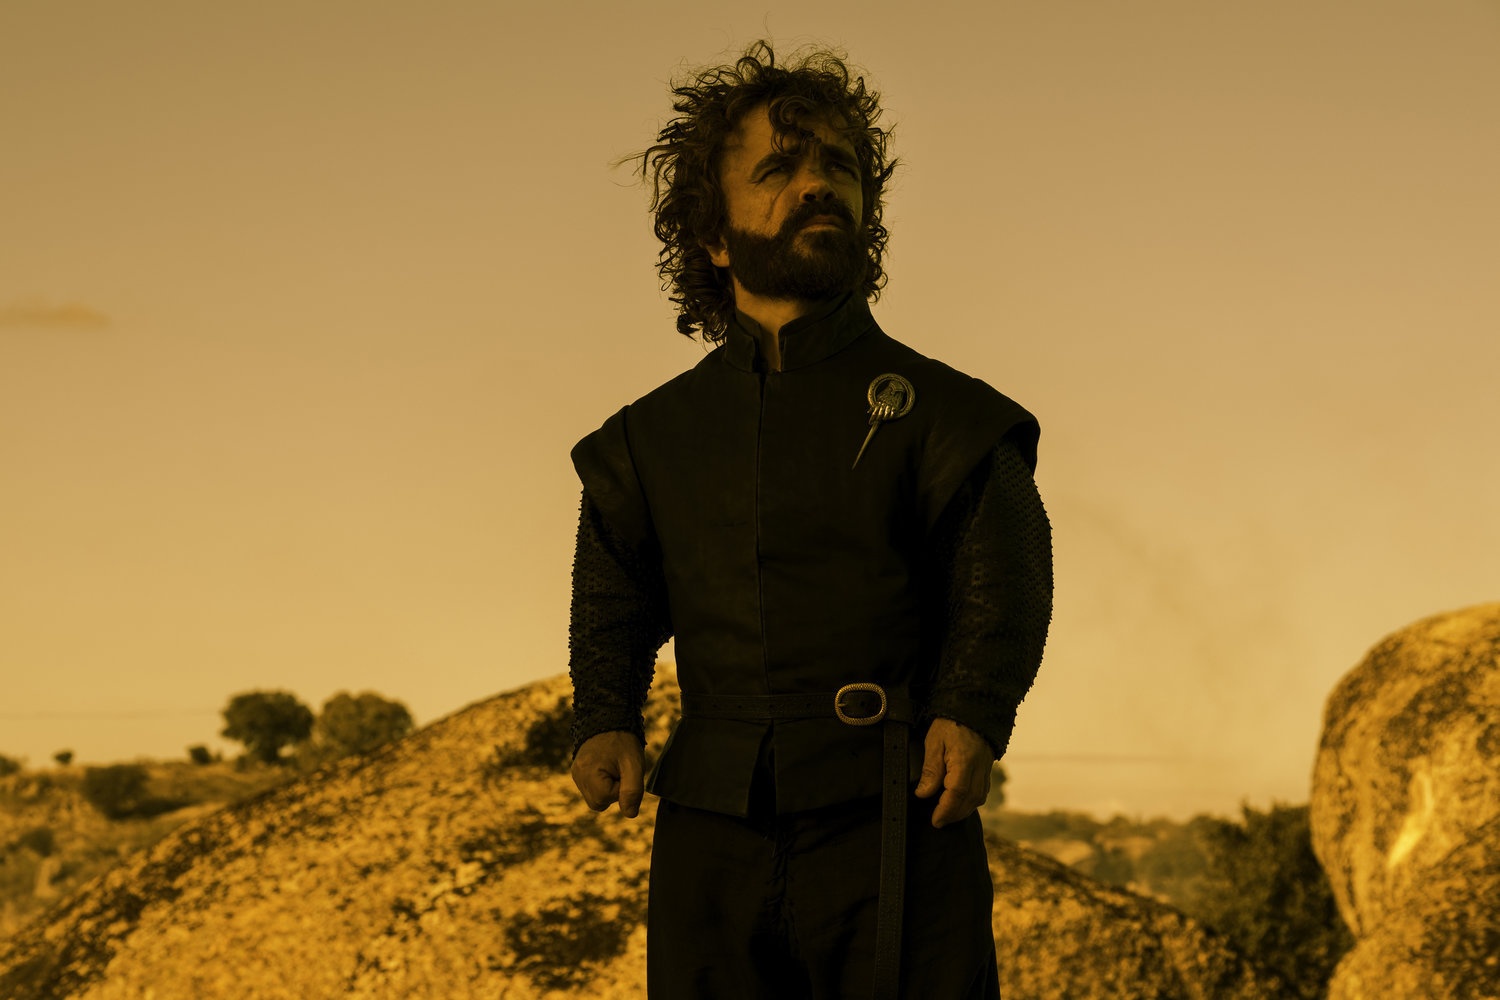 Who will win the Iron Throne in Game of Thrones? The case for Tyrion, the survivor.